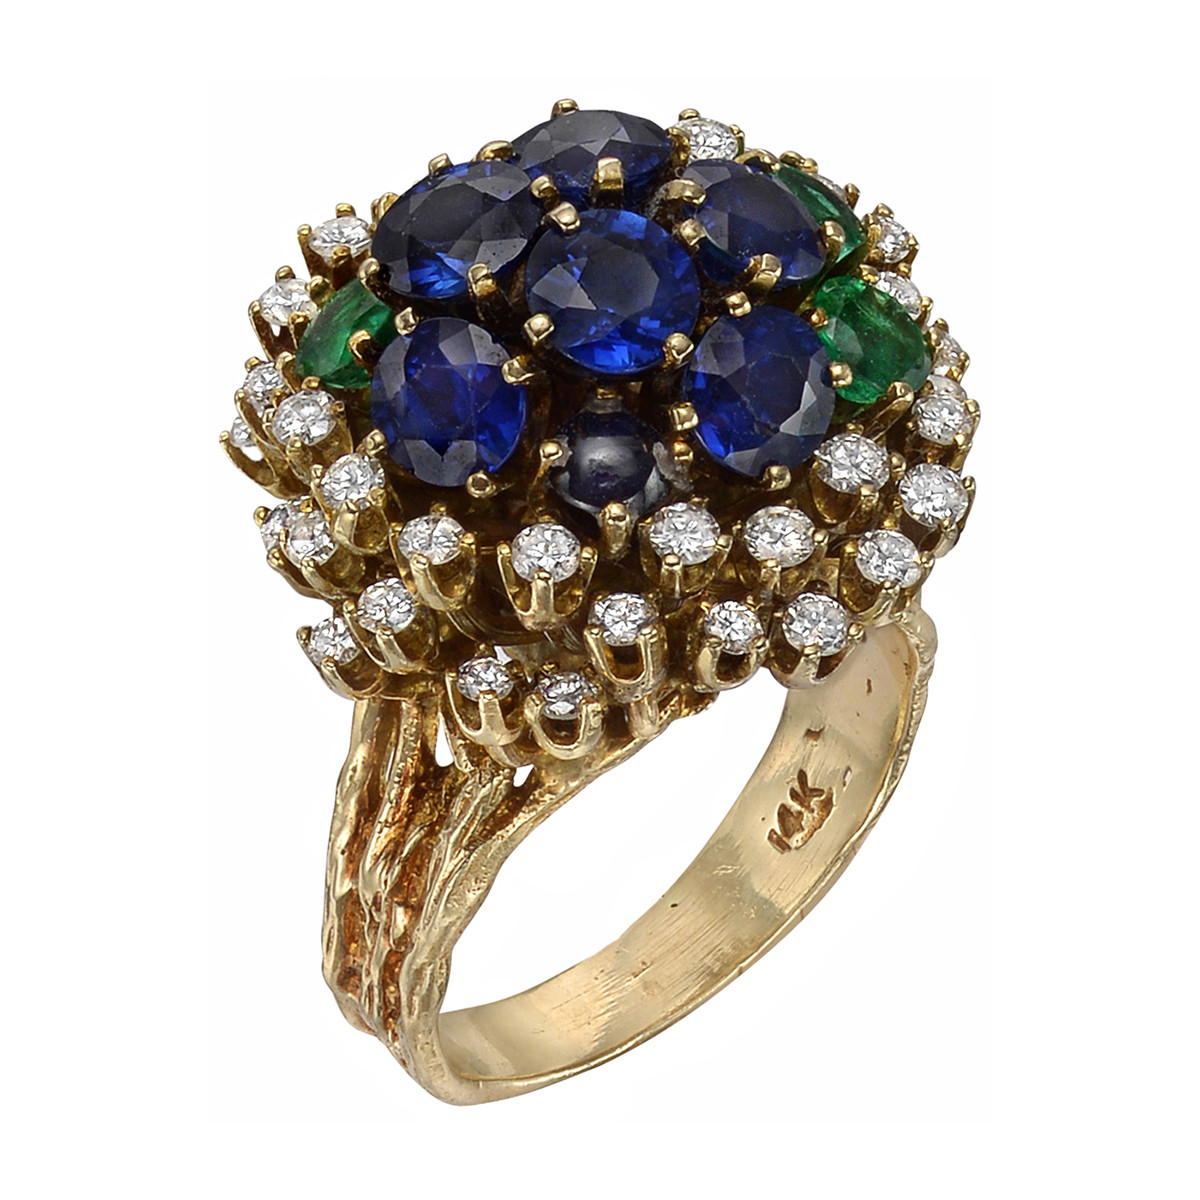 Sapphire, Emerald & Diamond Cocktail Ring